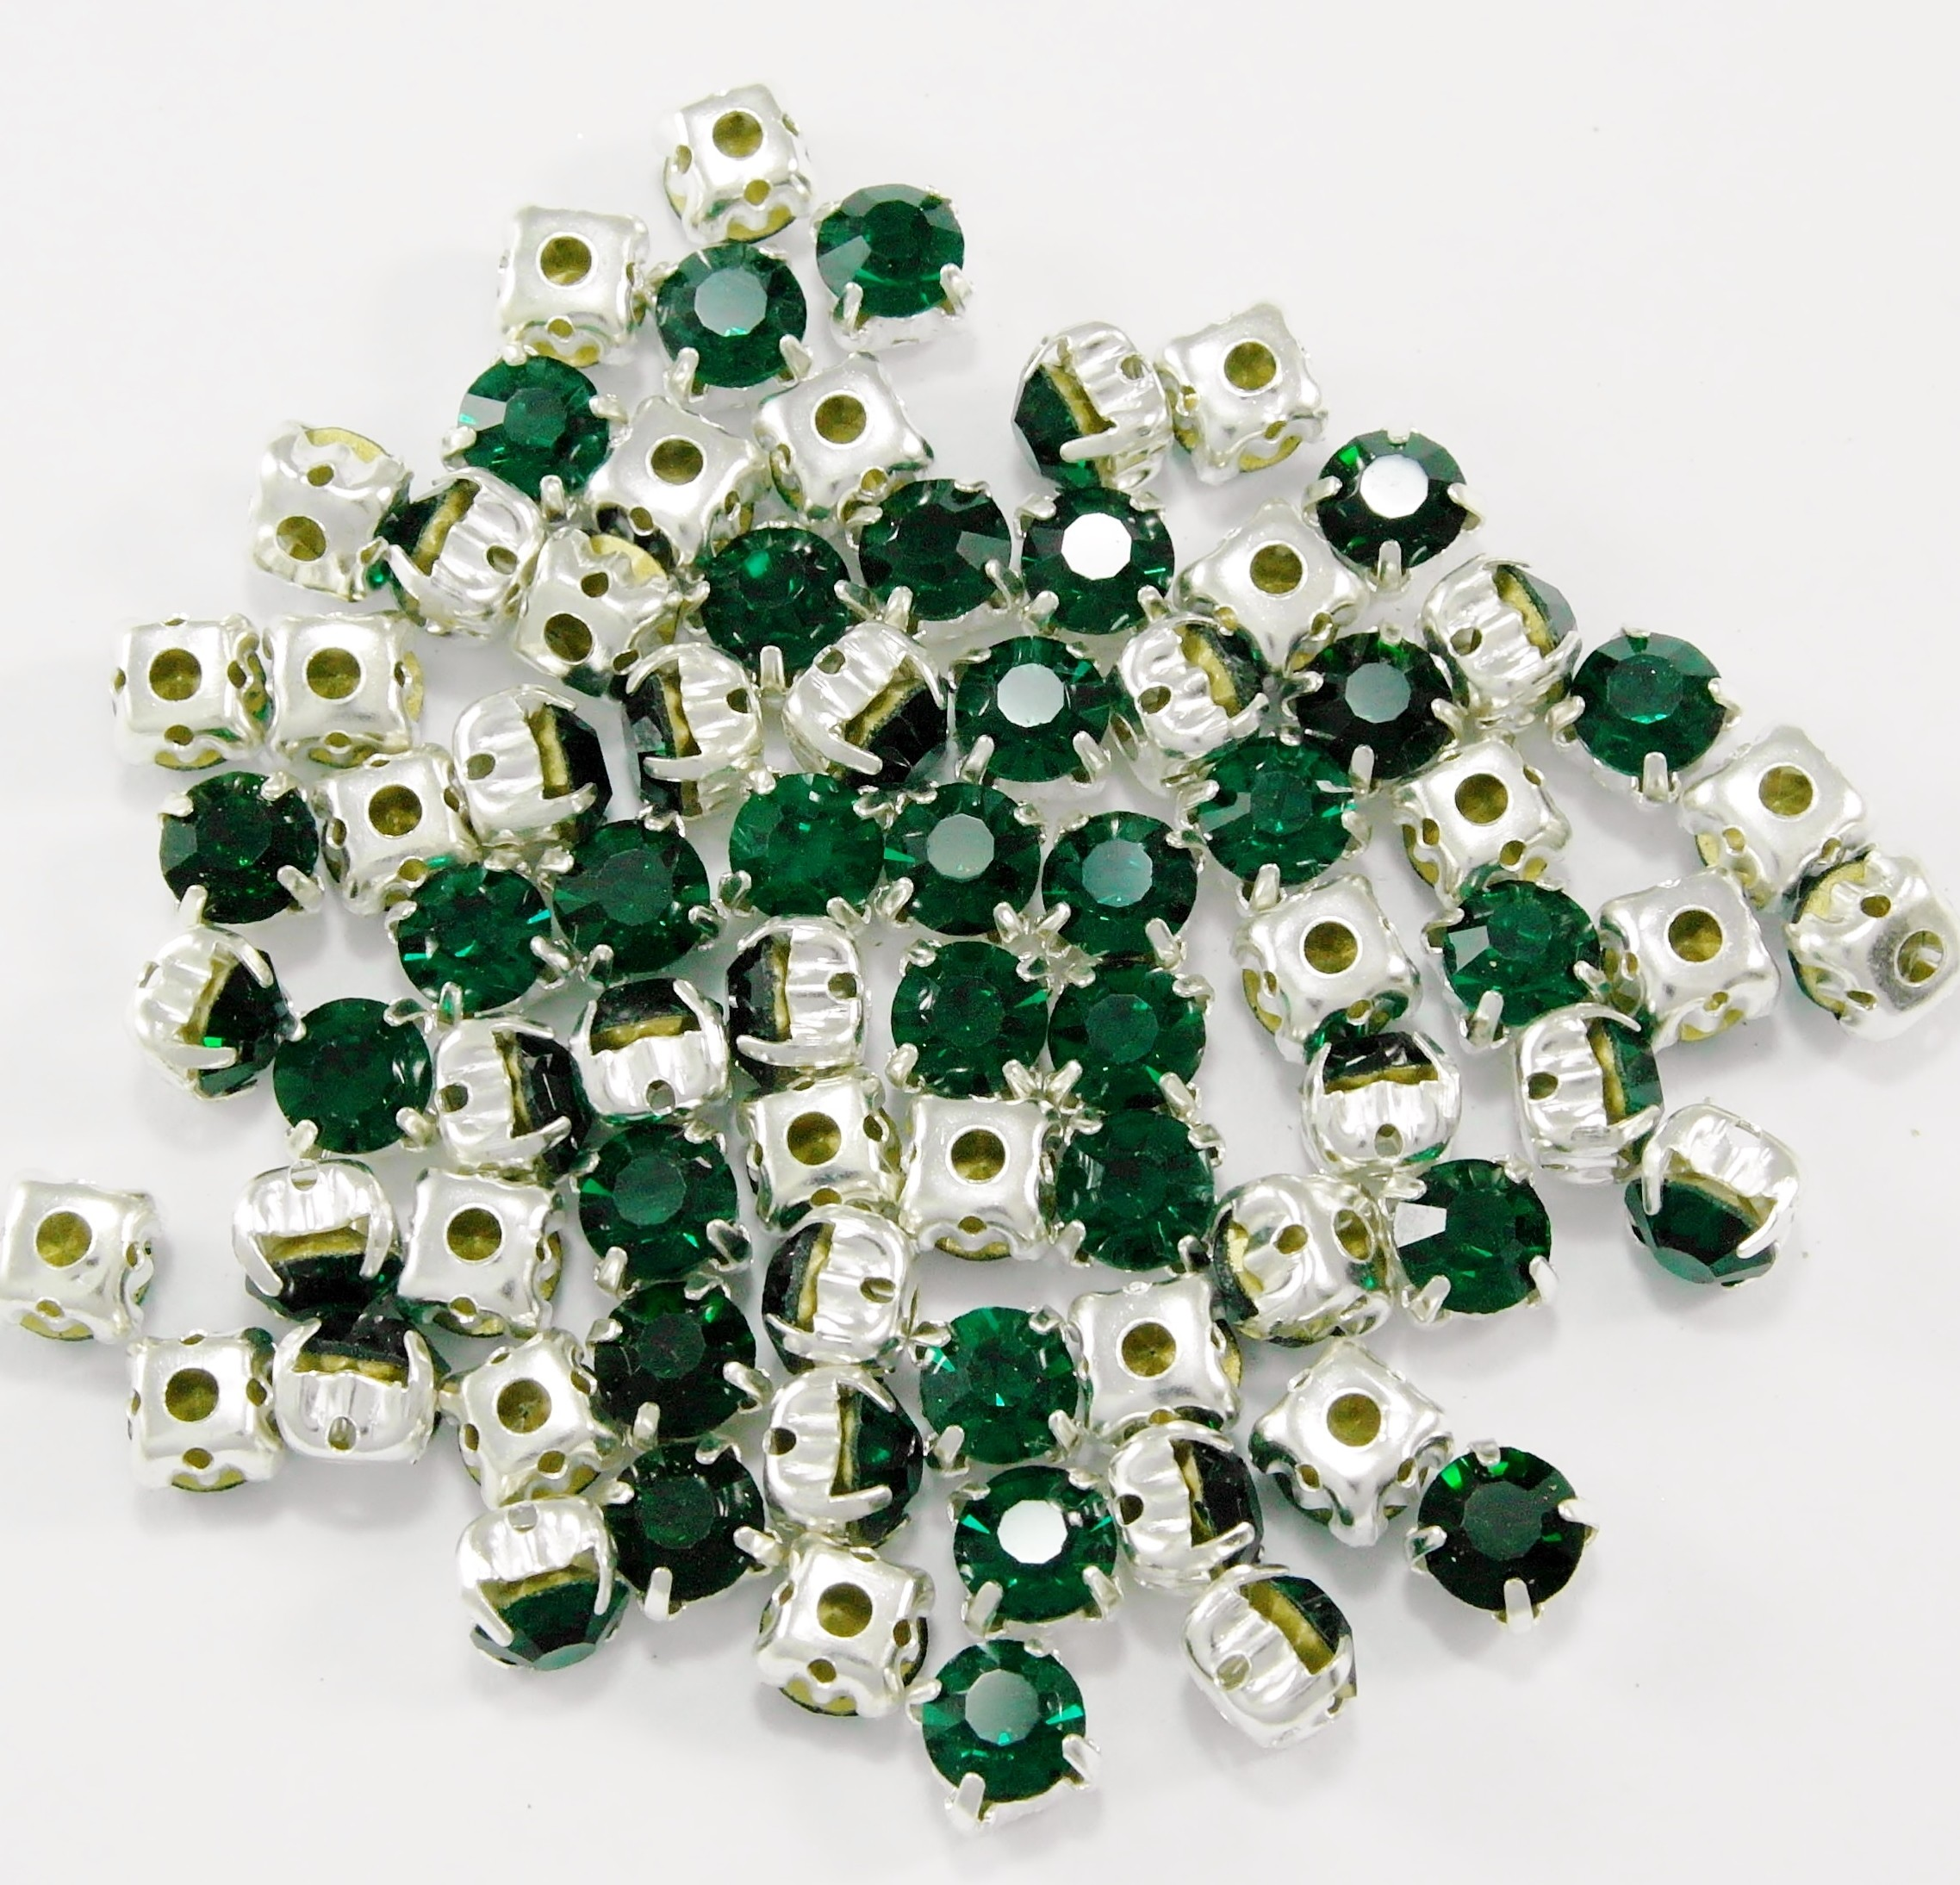 SS 34 montees - Emerald B8  ( 100 pcs )